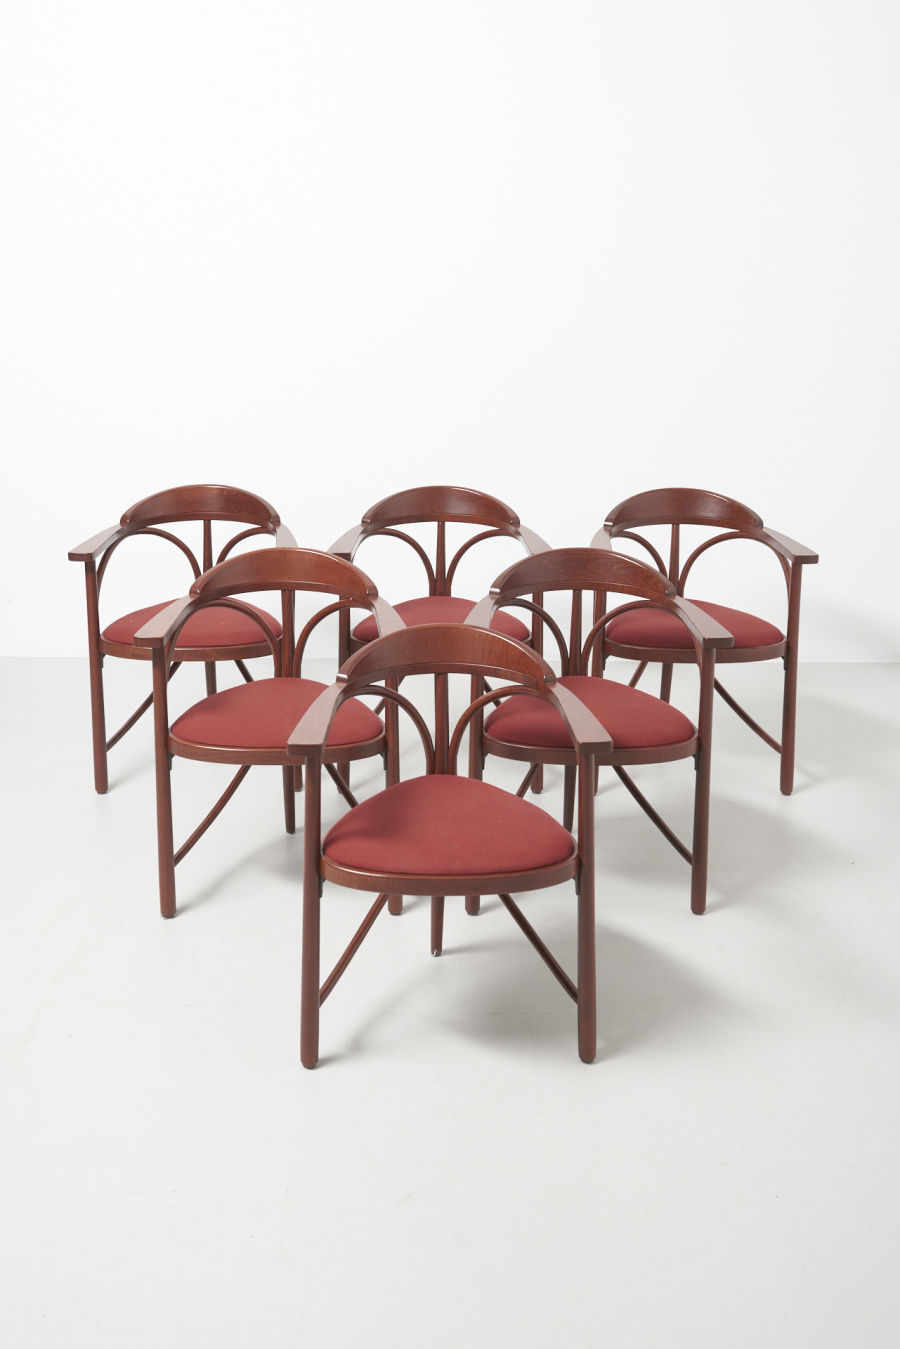 modestfurniture-vintage-1968-thonet-81-red02